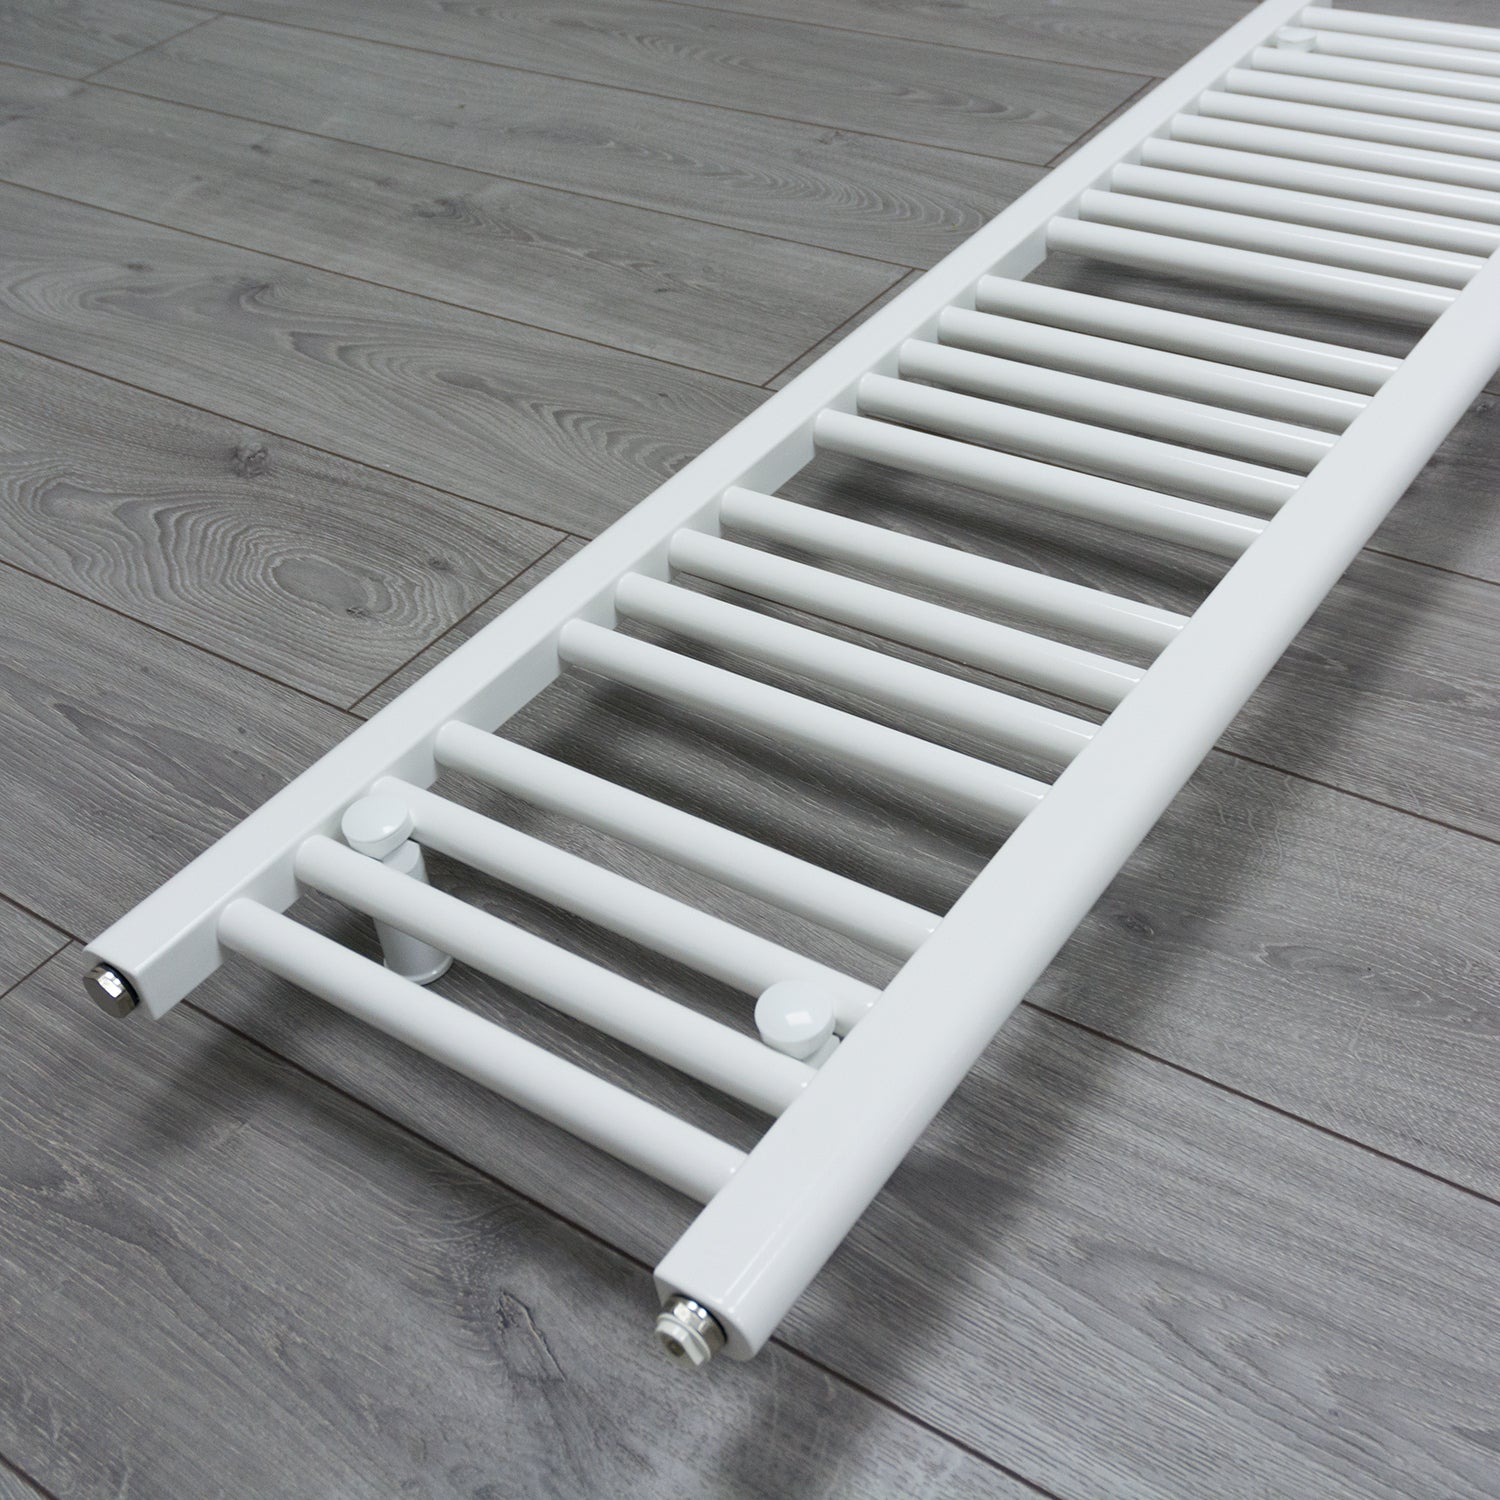 300mm x 1800mm White Heated Towel Rail Radiator Close Up Image